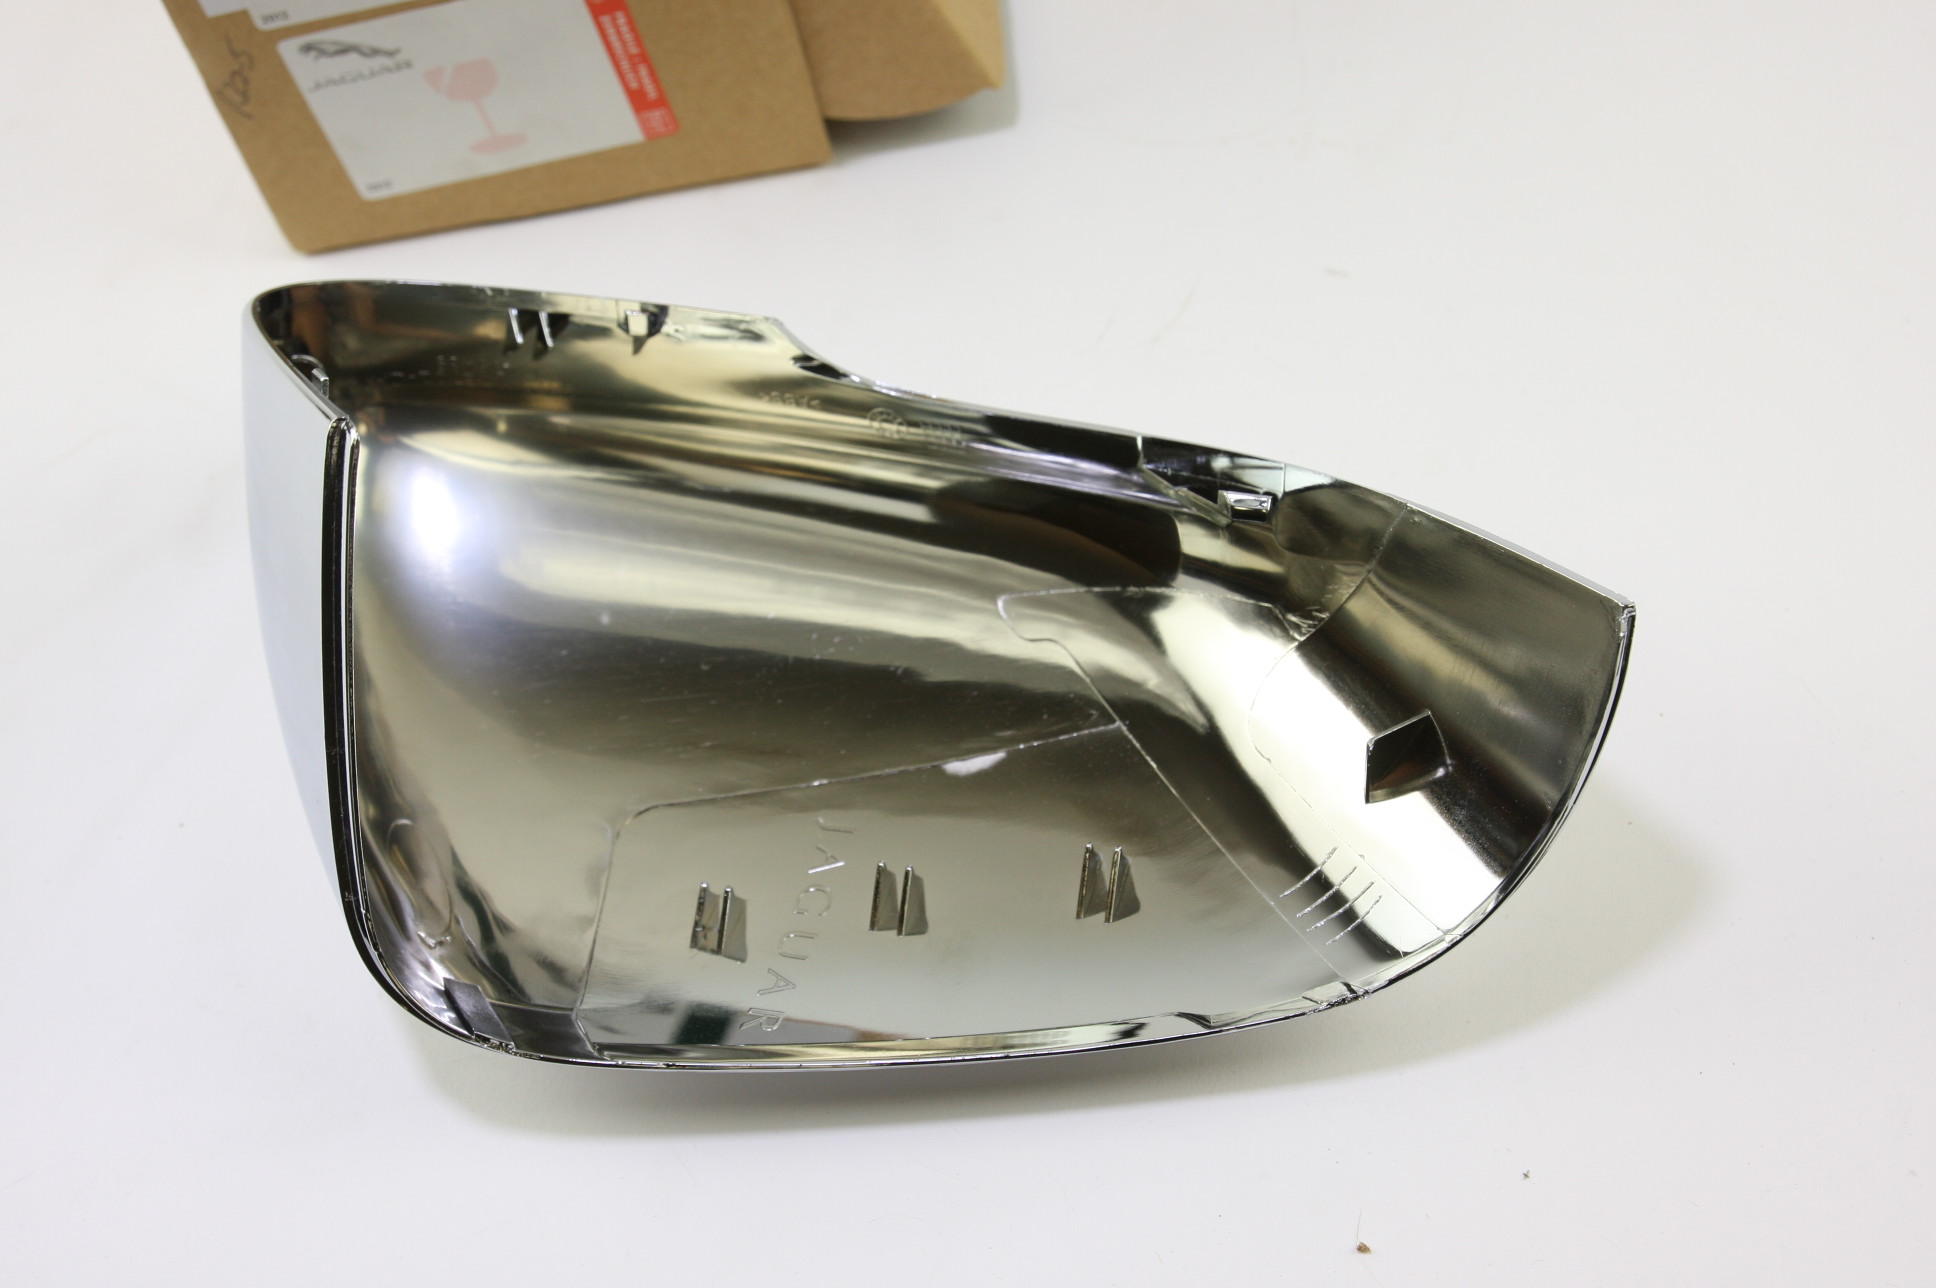 * New OEM C2D5489 Genuine Jaguar Driver Left Side Door Mirror Back Cover Chrome - image 4